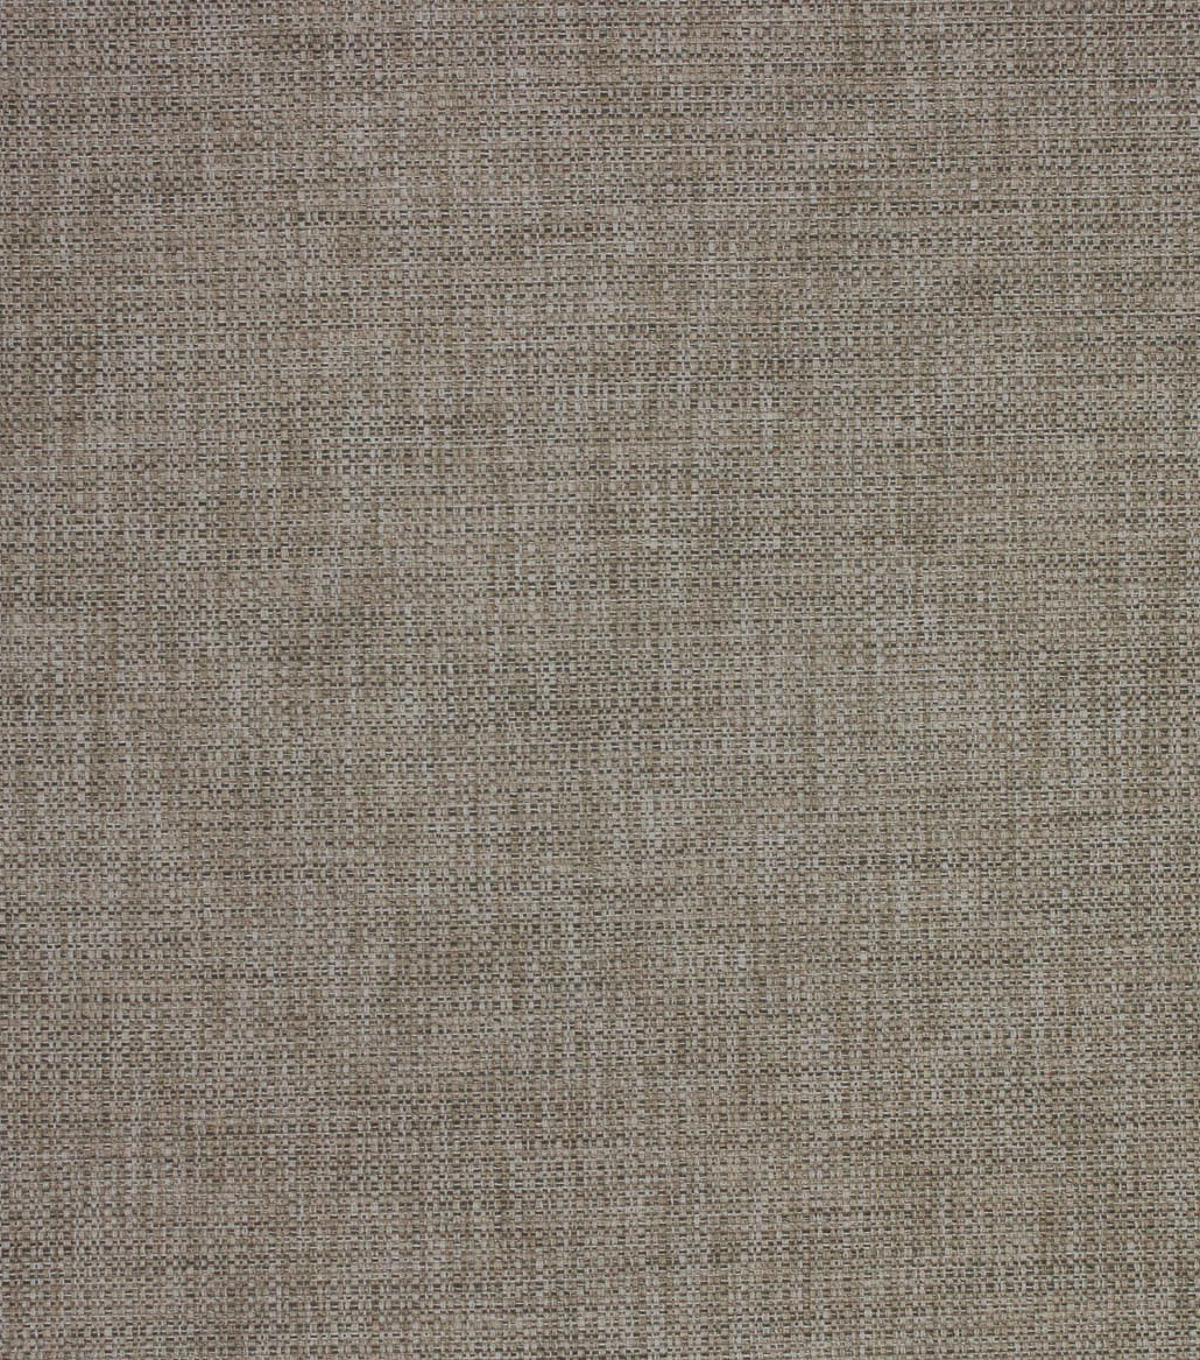 Richloom Studio Multi-Purpose Decor Fabric 55\u0022-Climate/Mica